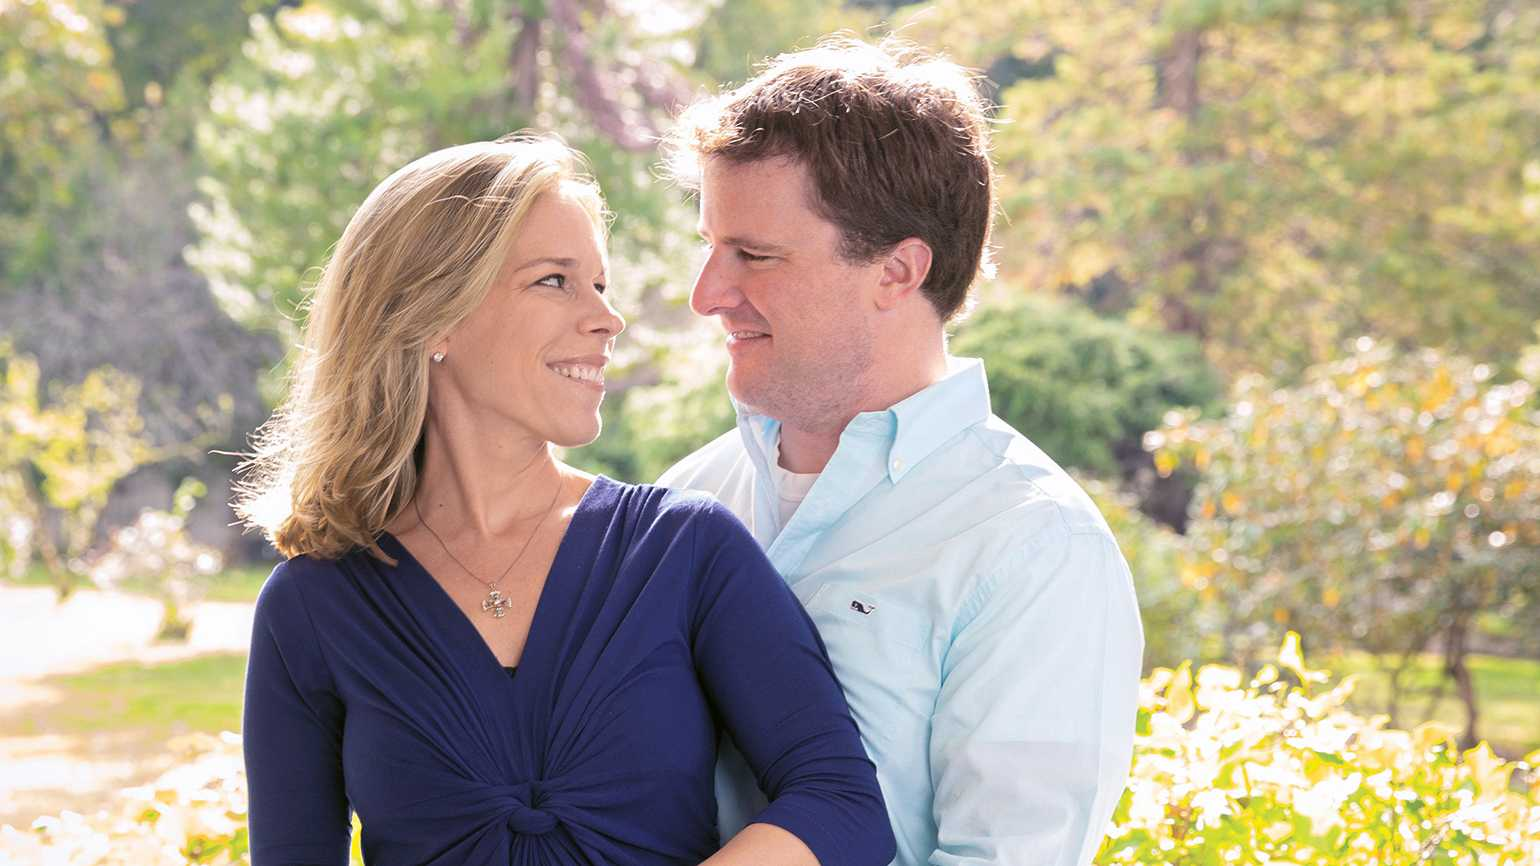 Allisoninlove her husband had a stroke when he was 30 | guideposts